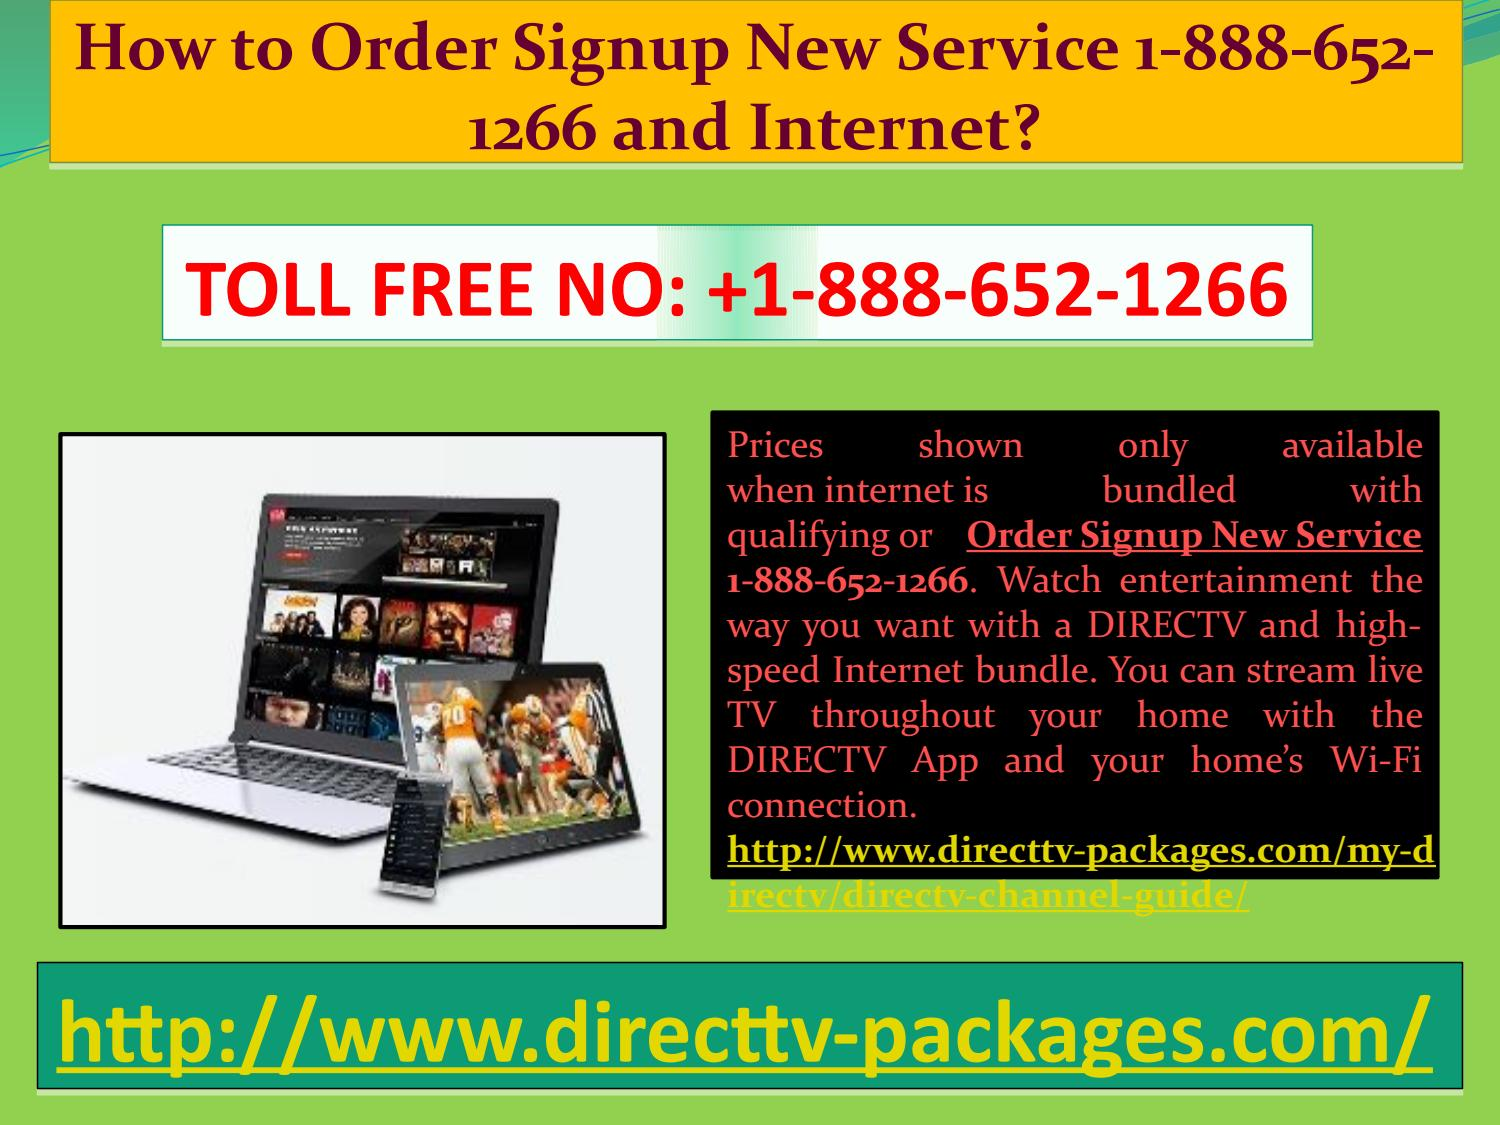 Does Directv Have Internet Service >> Is New Customer Direct Tv Offers 1 888 652 1266 Internet